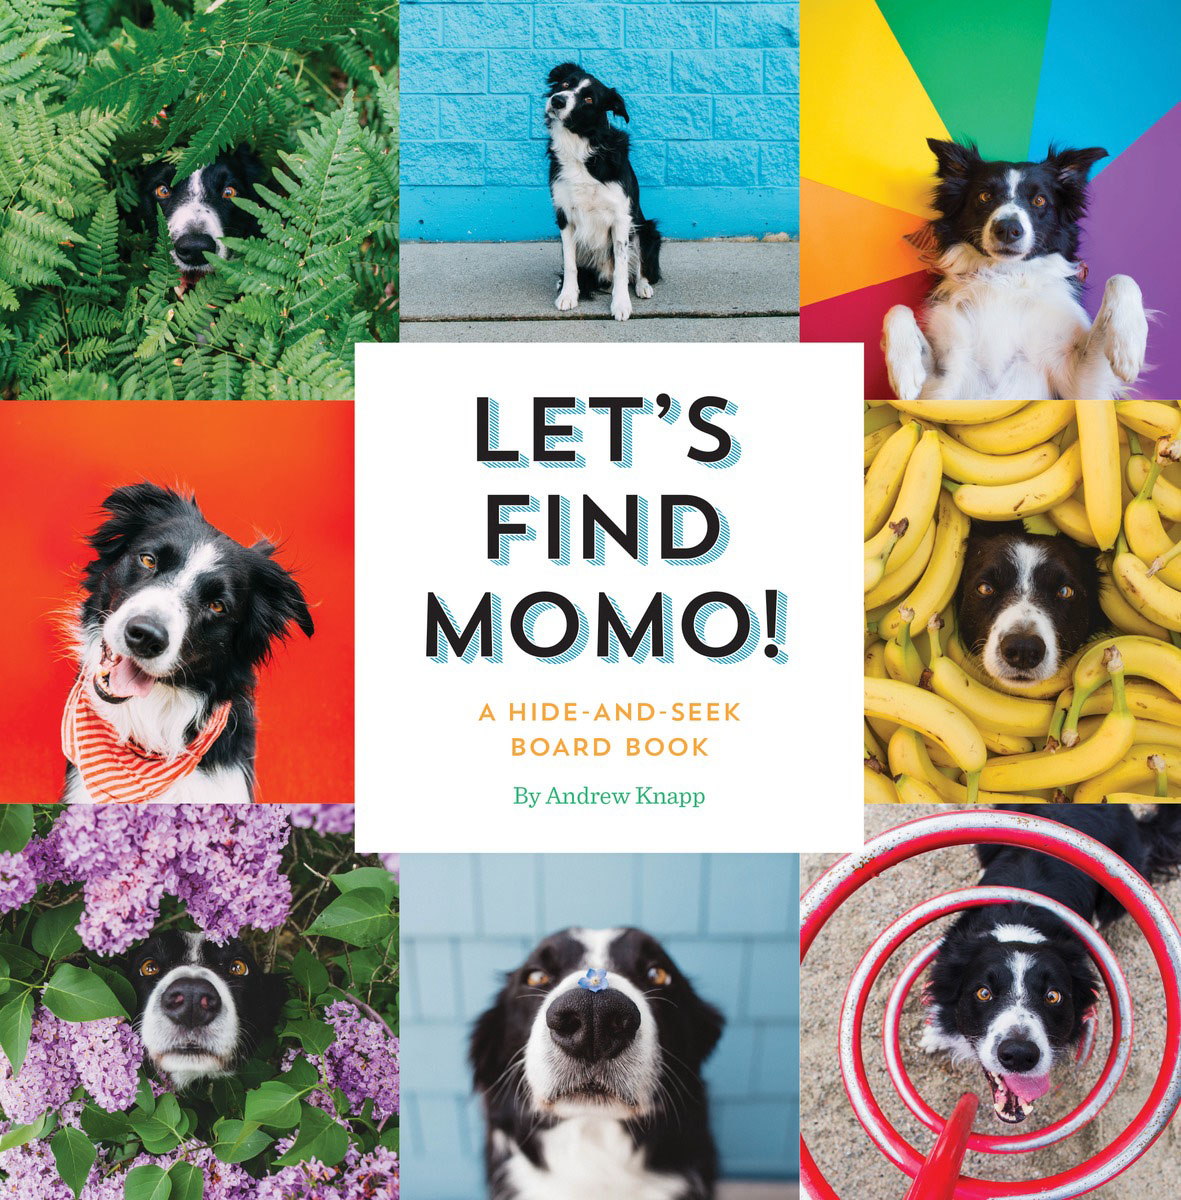 Let's Find Momo! feel and find fun building site